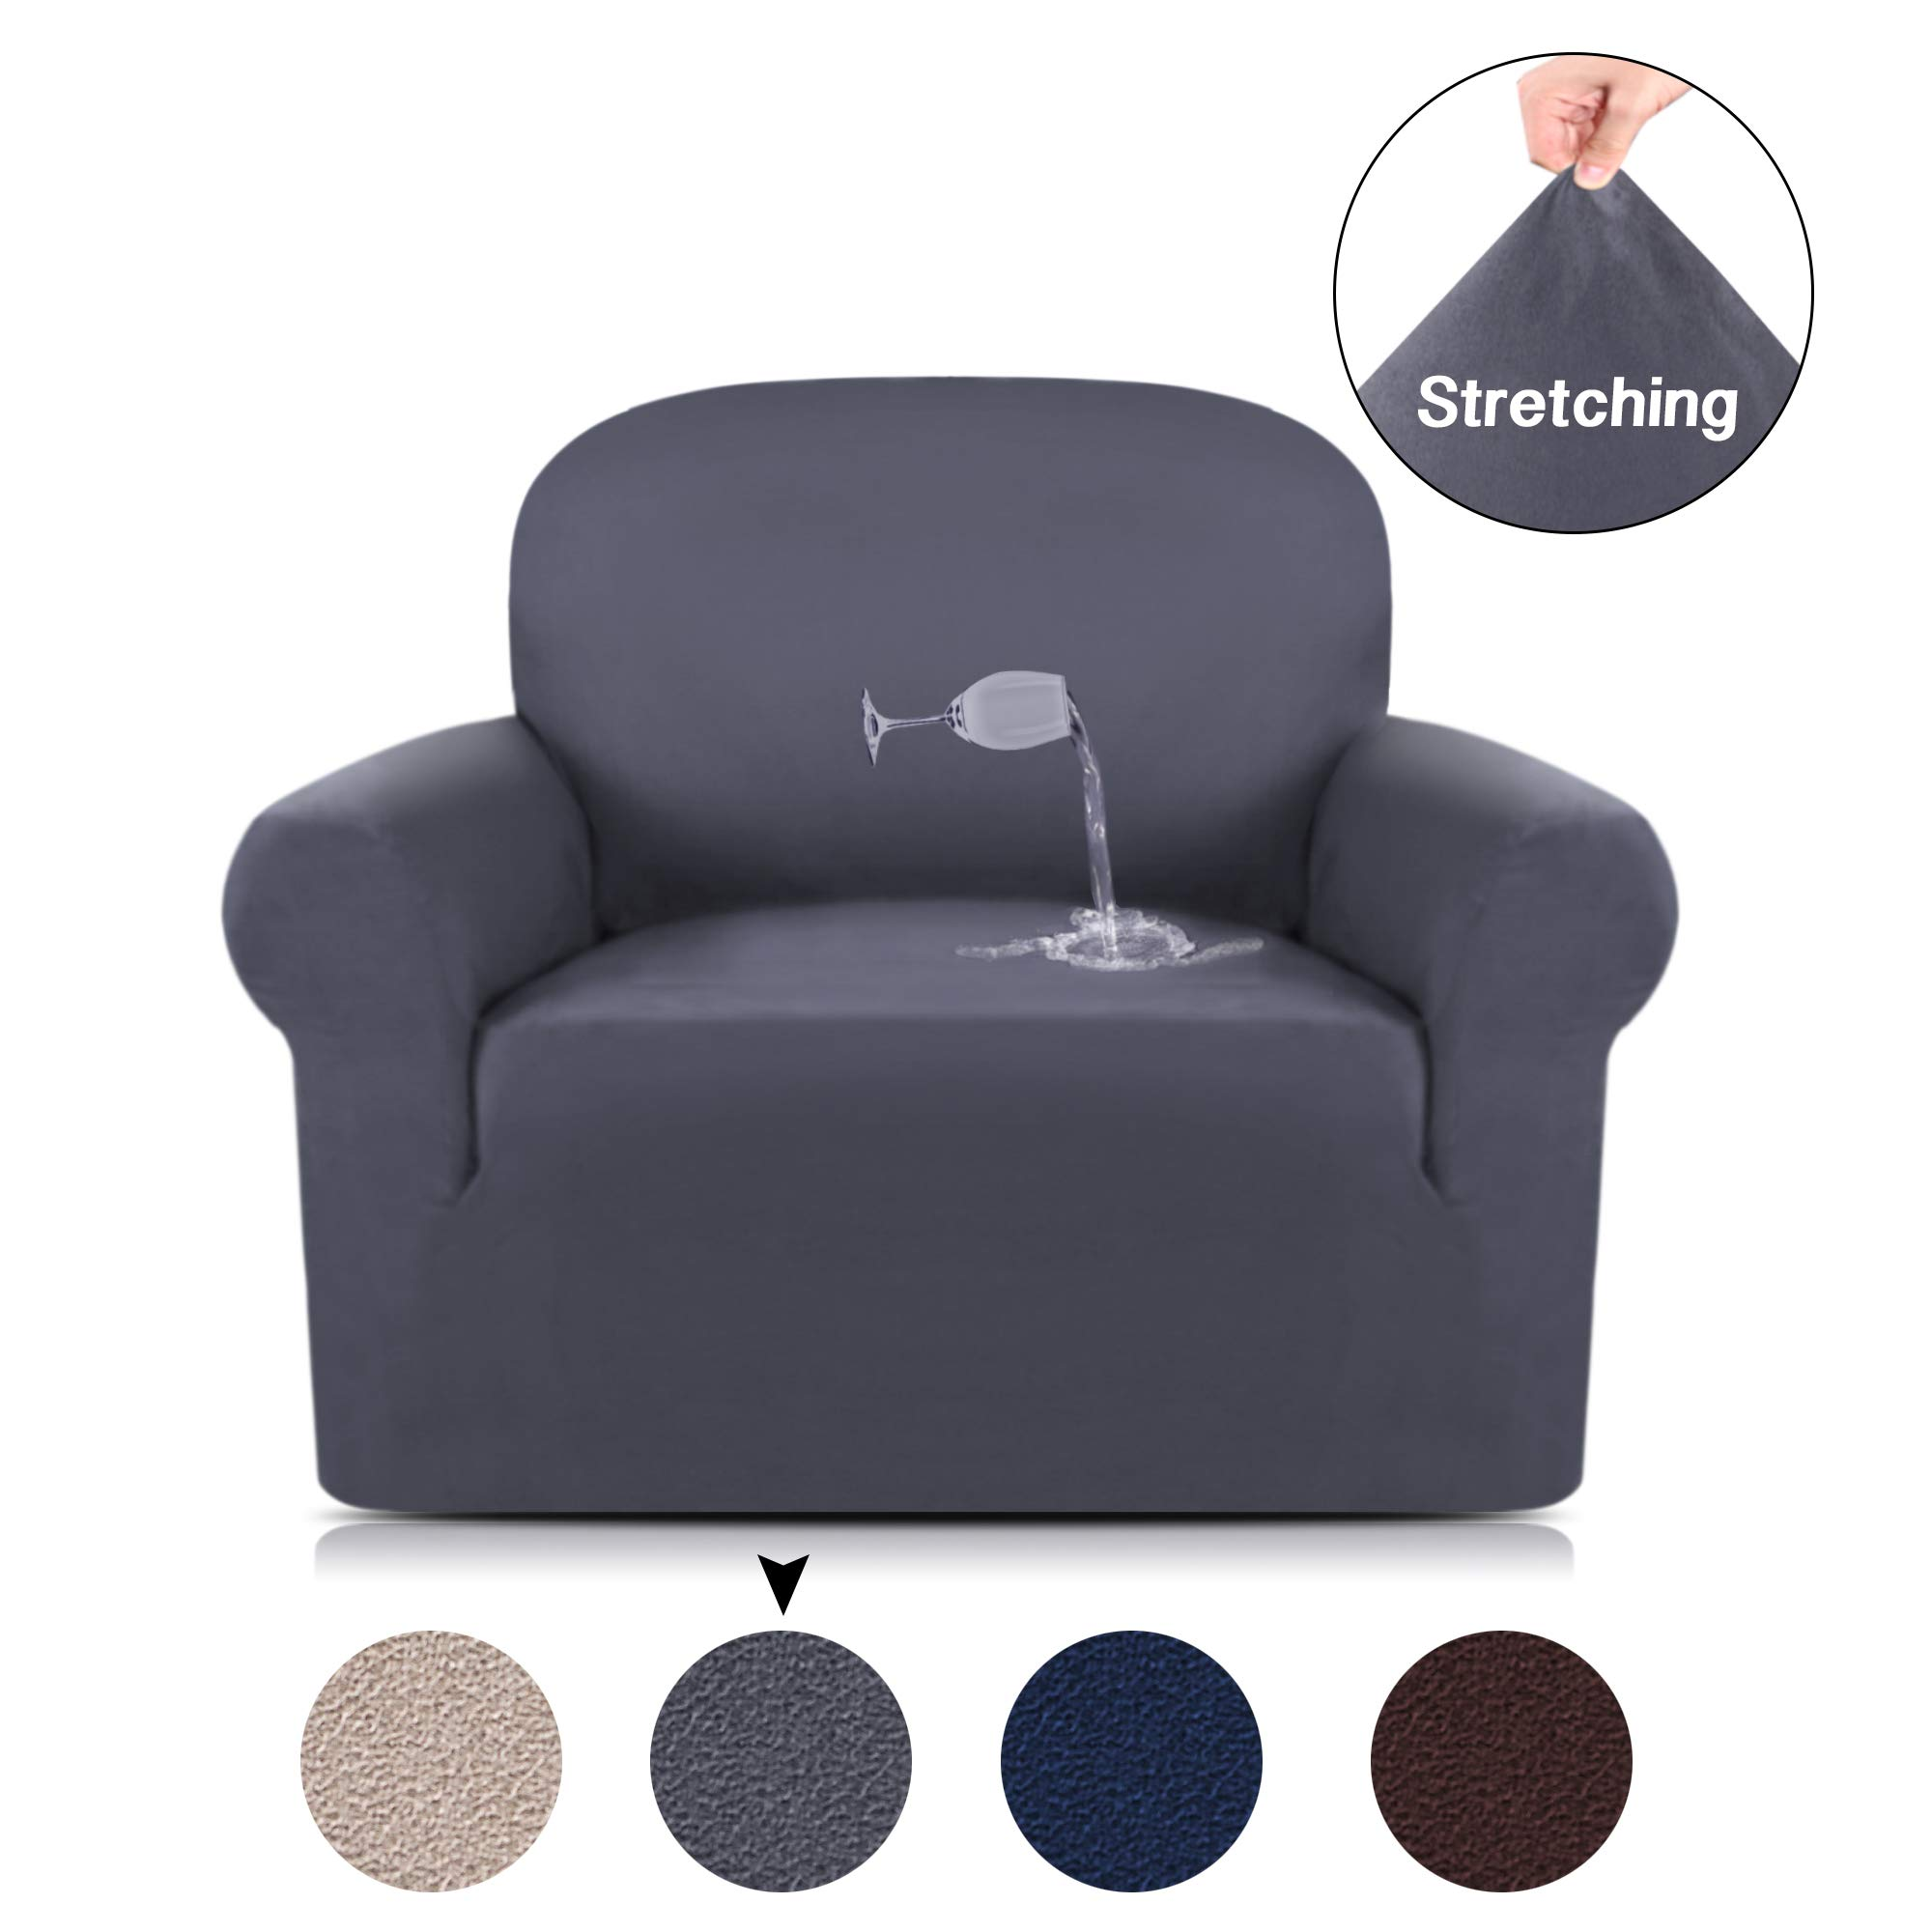 Turquoize Anti-Slip Suede Sofa Cover 1-Piece Spandex Stretch Chair Cover Water Repellent Elastic Pet Dog Sofa Couch Cover Slipcover Arm-Chair Furniture Protector Shield (Chair,Grey)